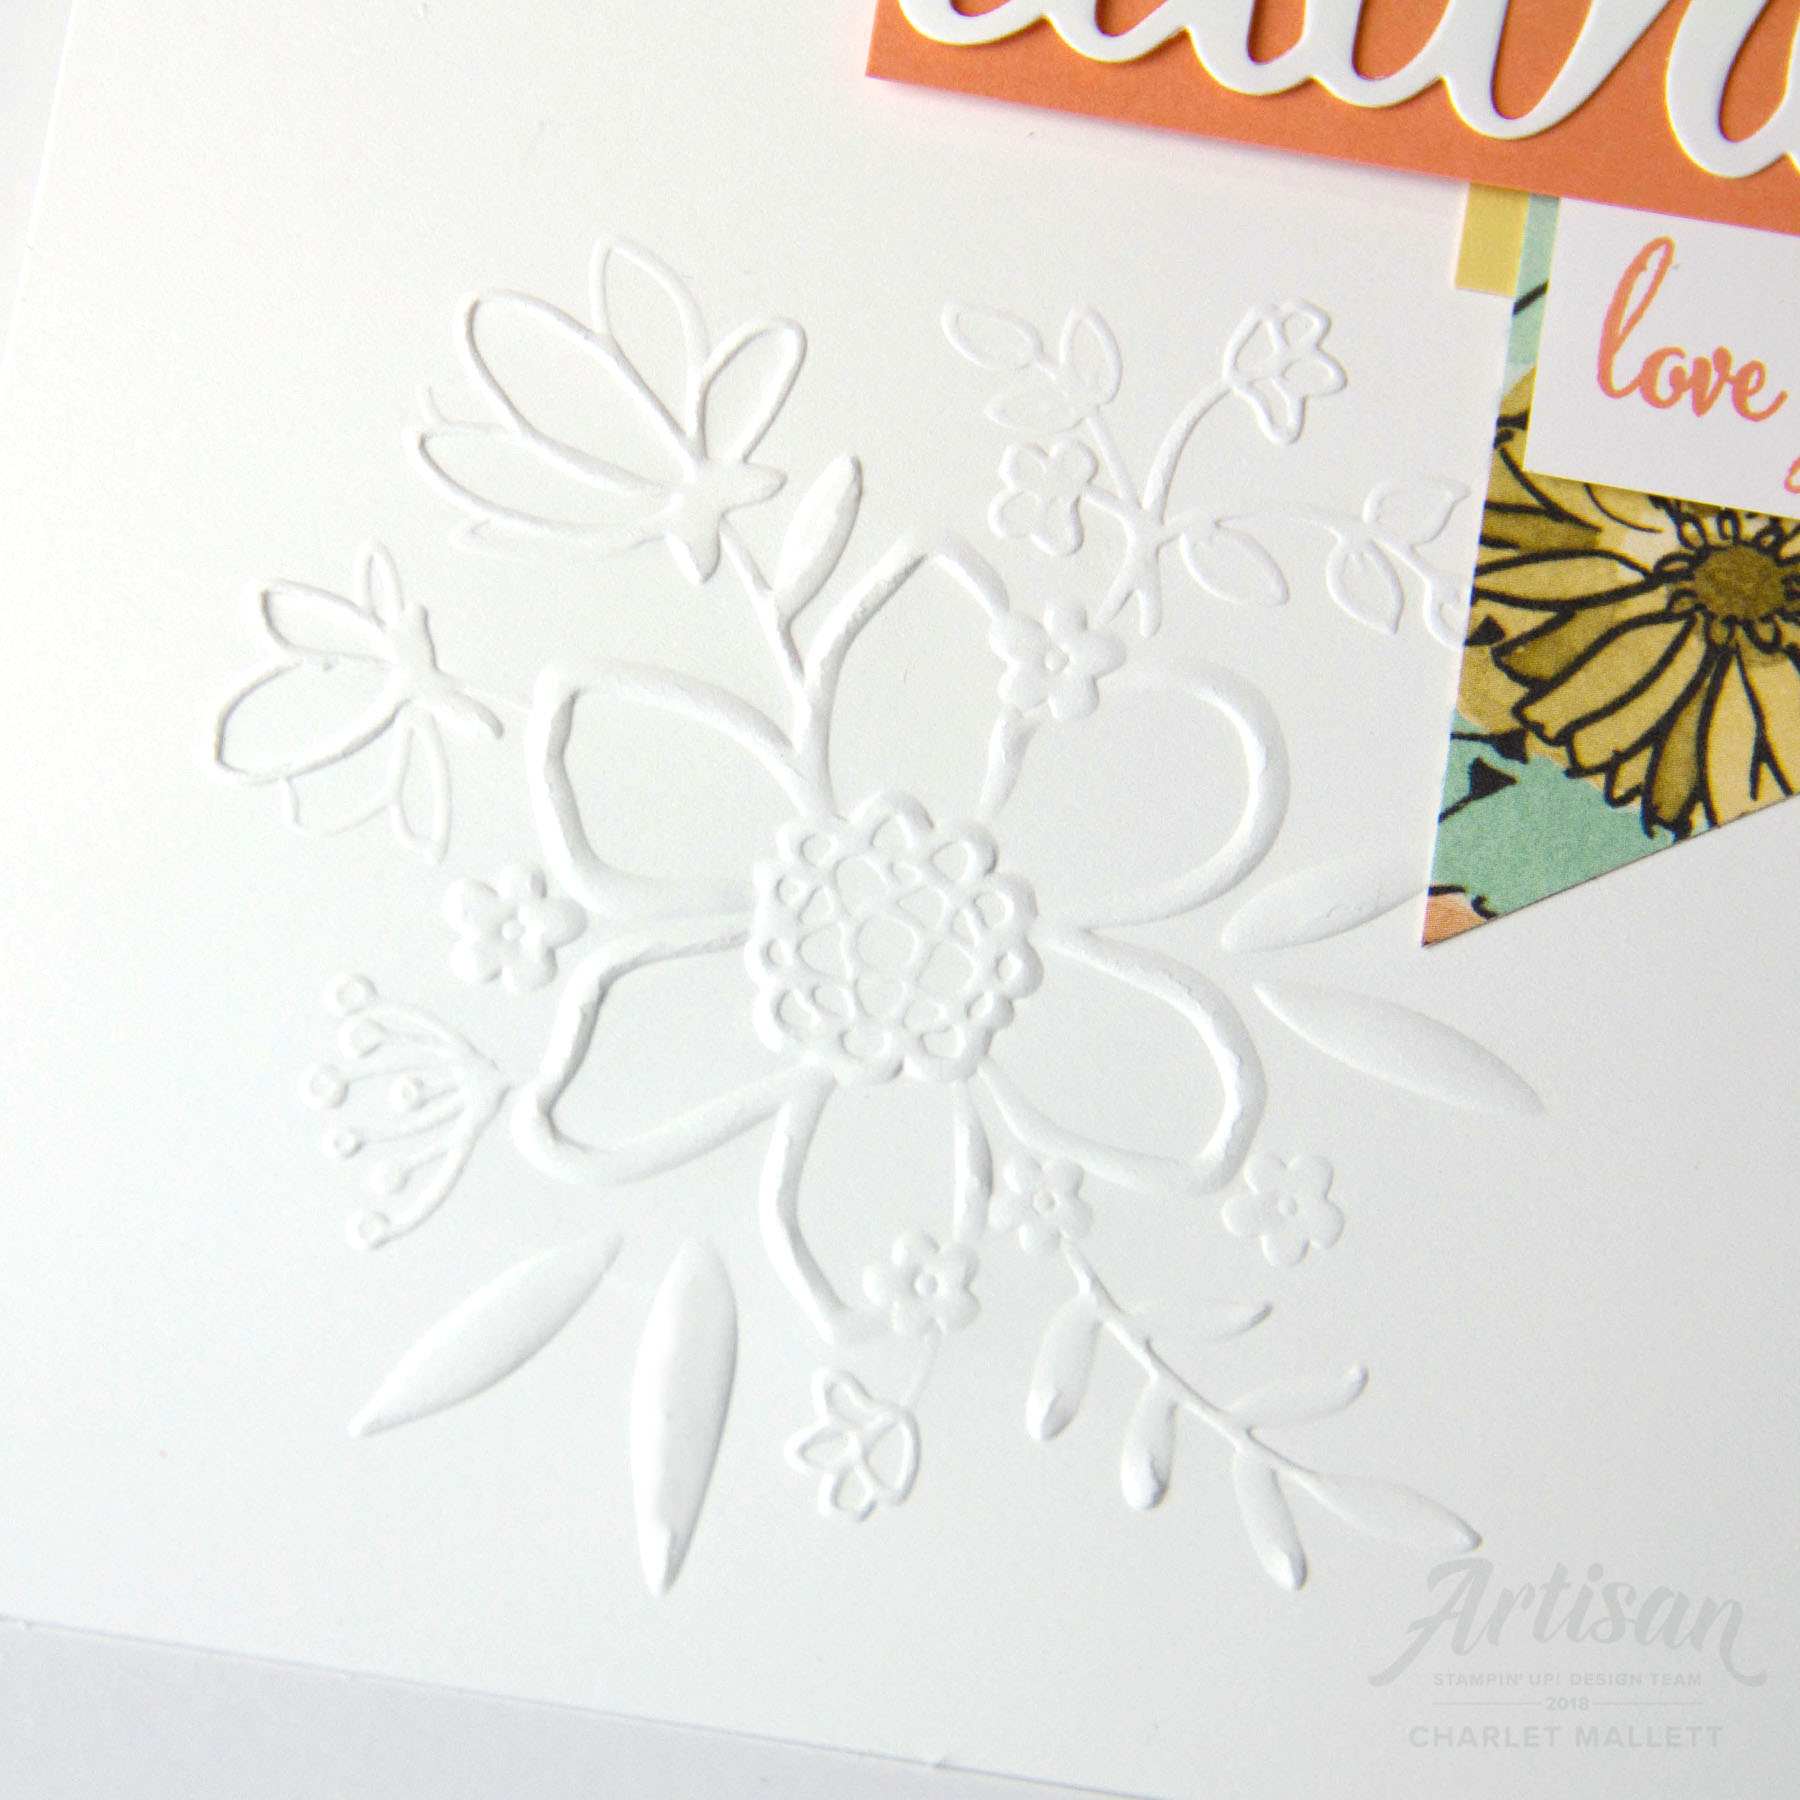 Share What You Love Scrapbook (6 of 6).jpg